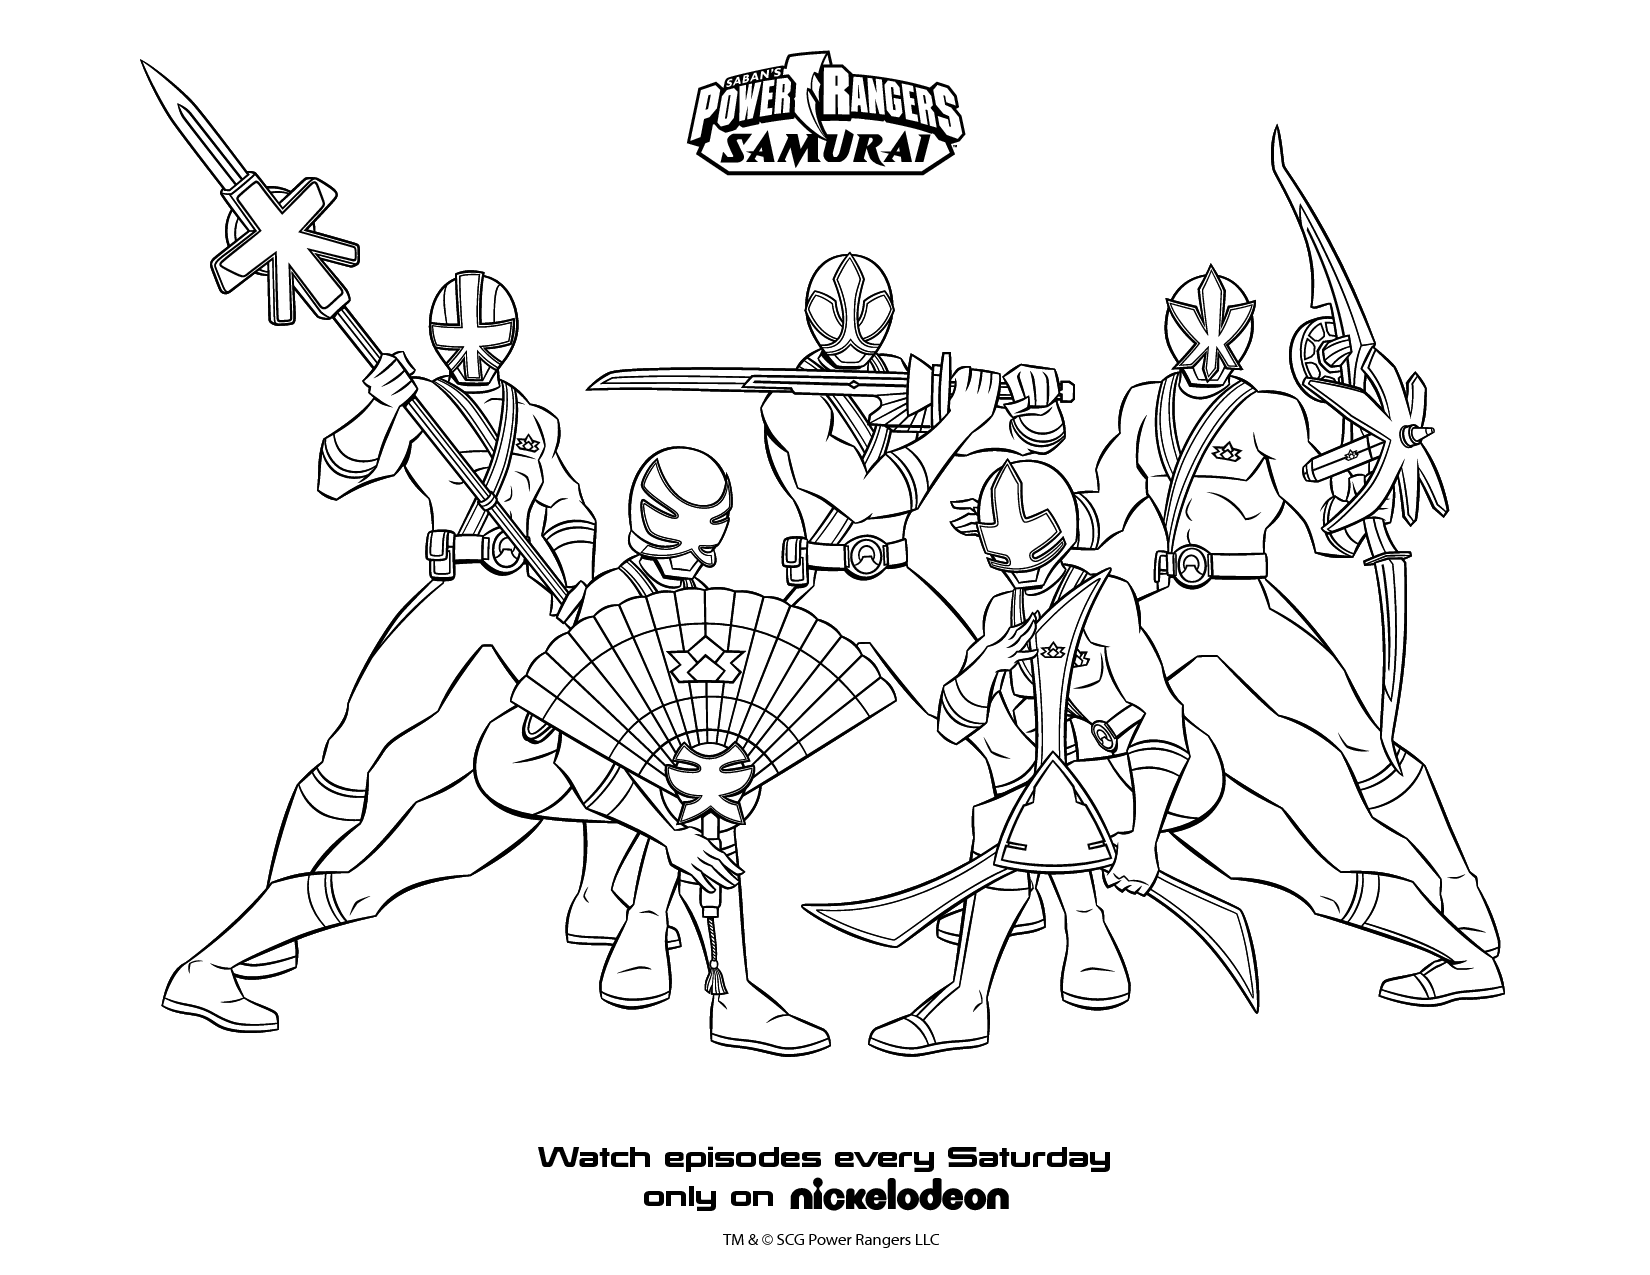 Power Rangers (Superheroes) - Printable coloring pages